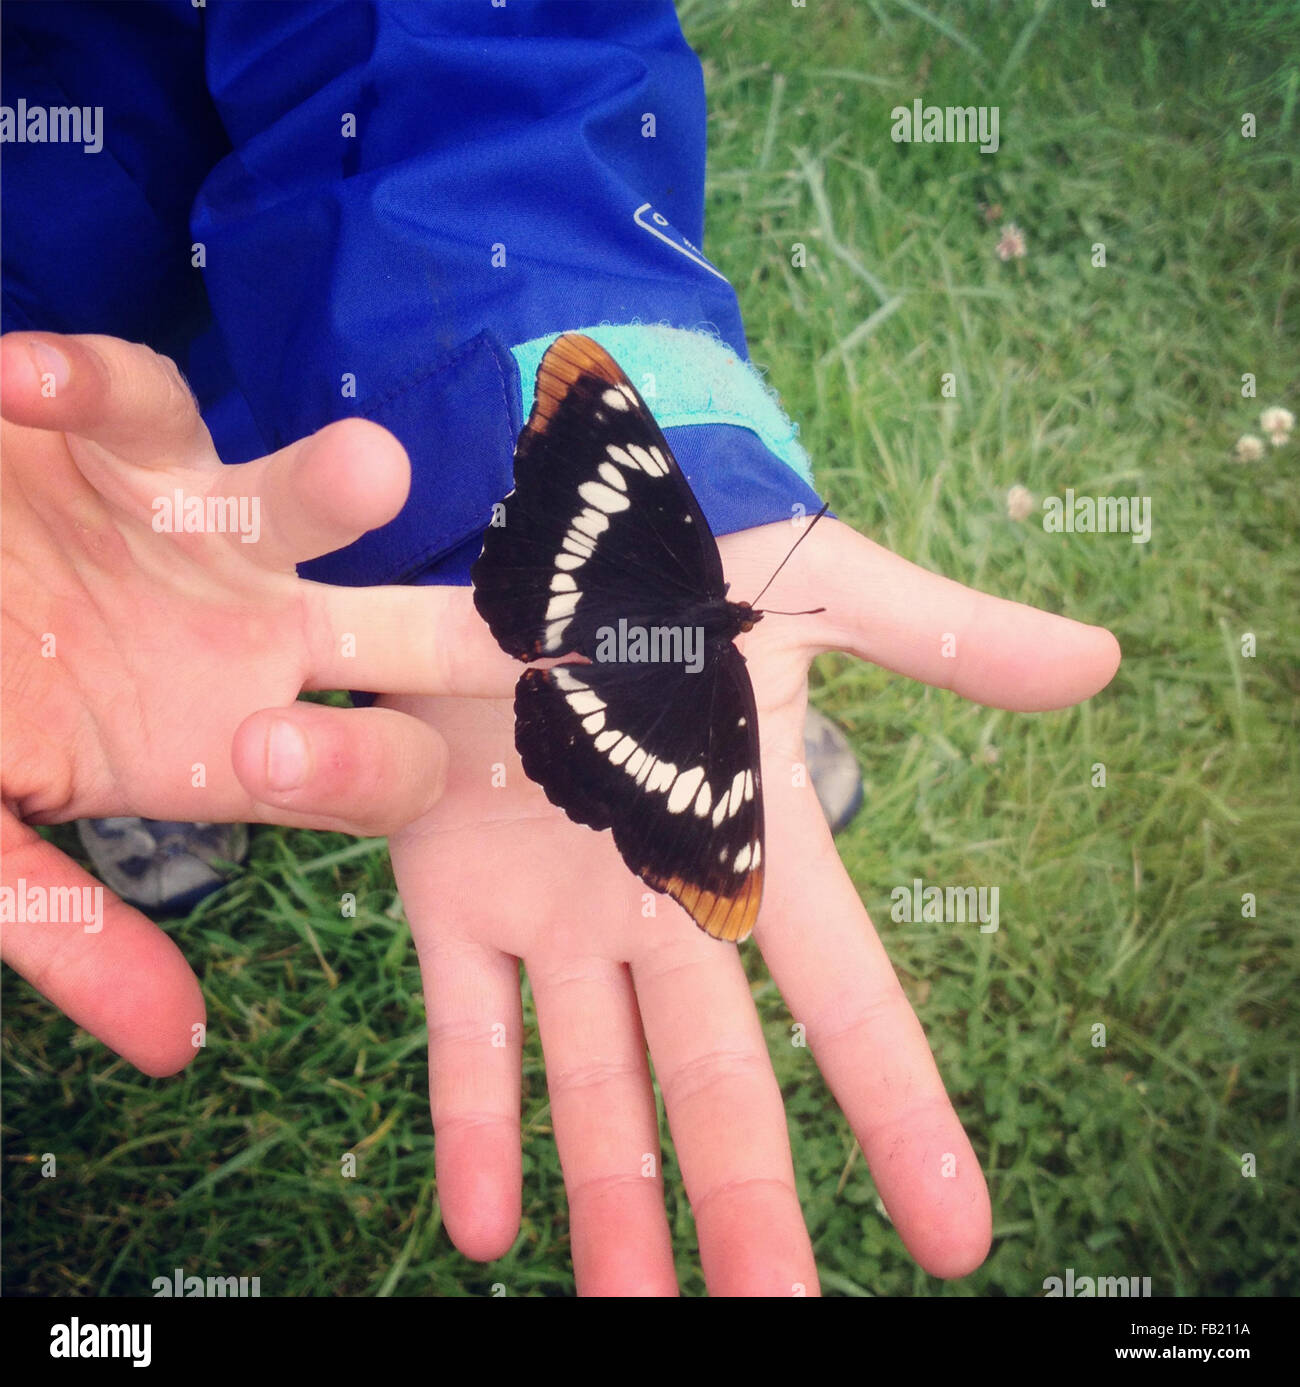 butterfly in child's hand - Stock Image